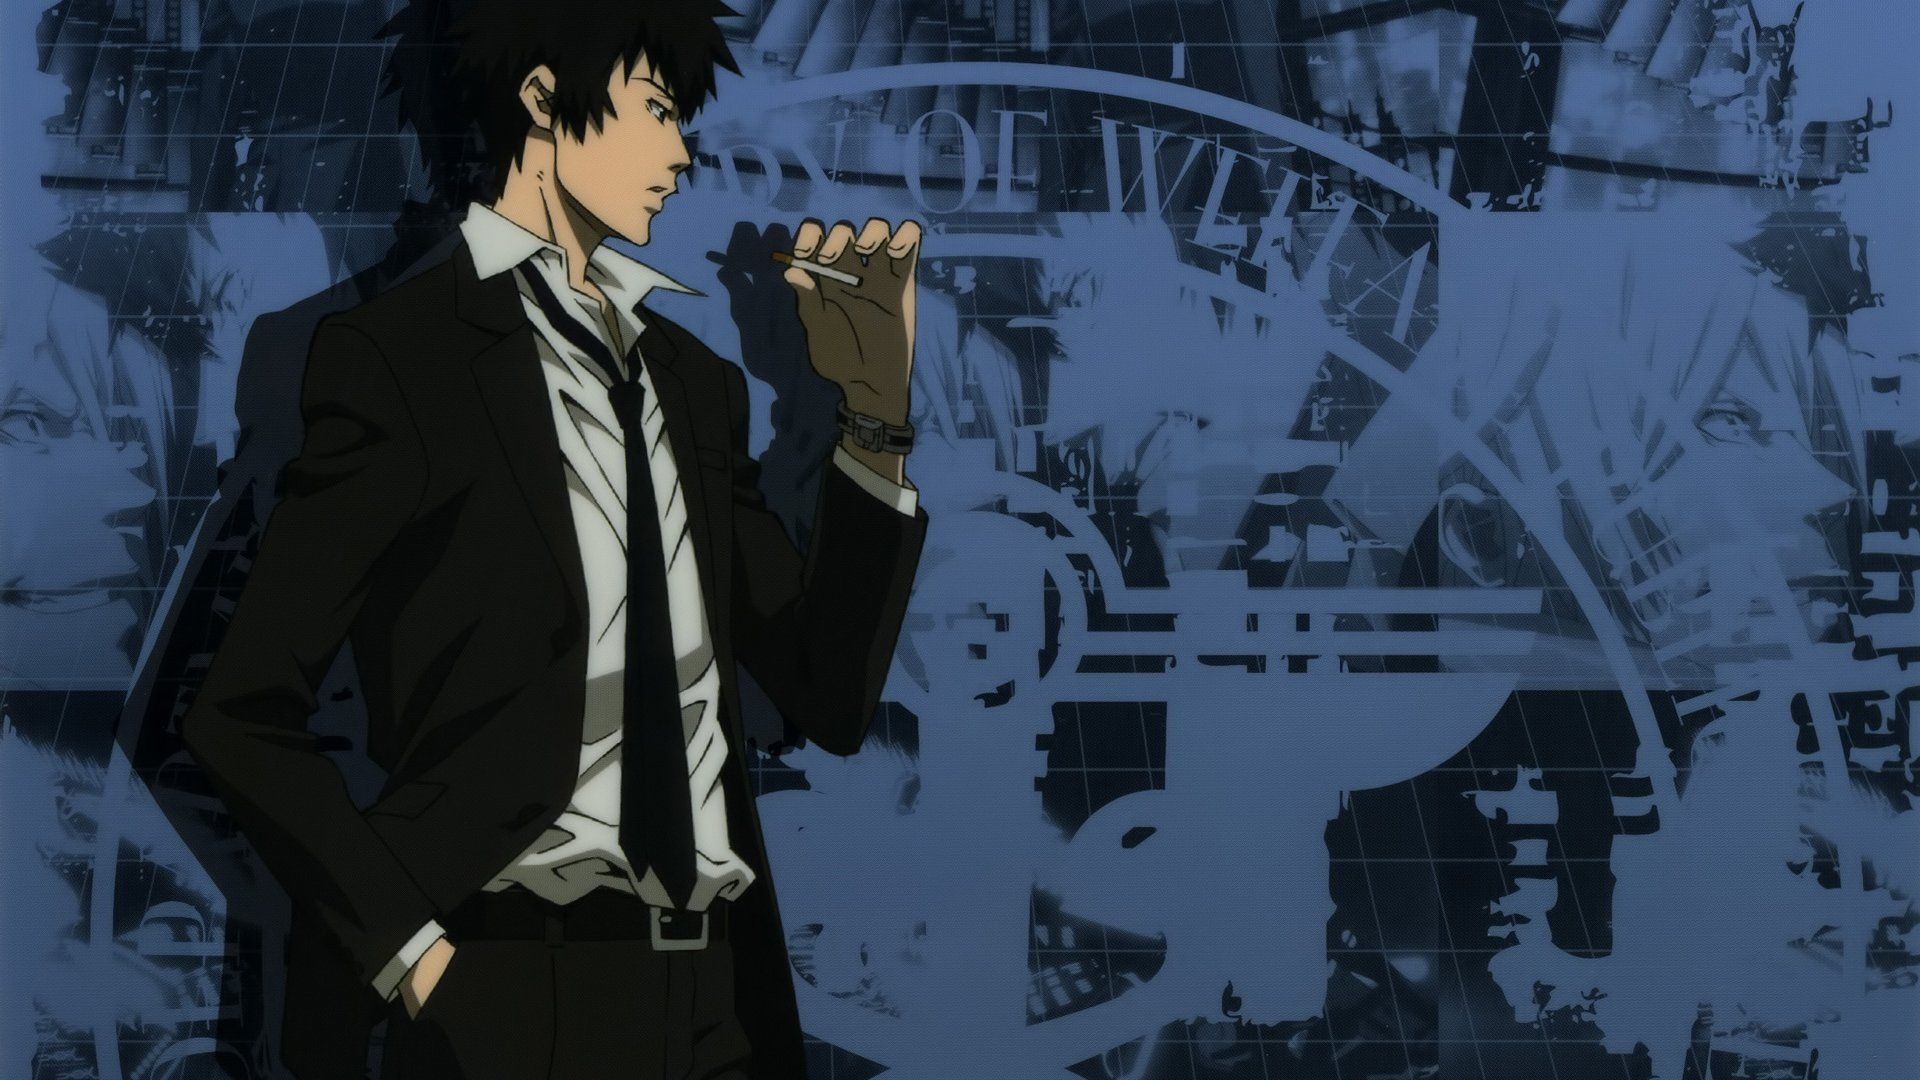 Anime Psycho Pass Shinya Kogami Wallpaper Psycho Pass Pinterest